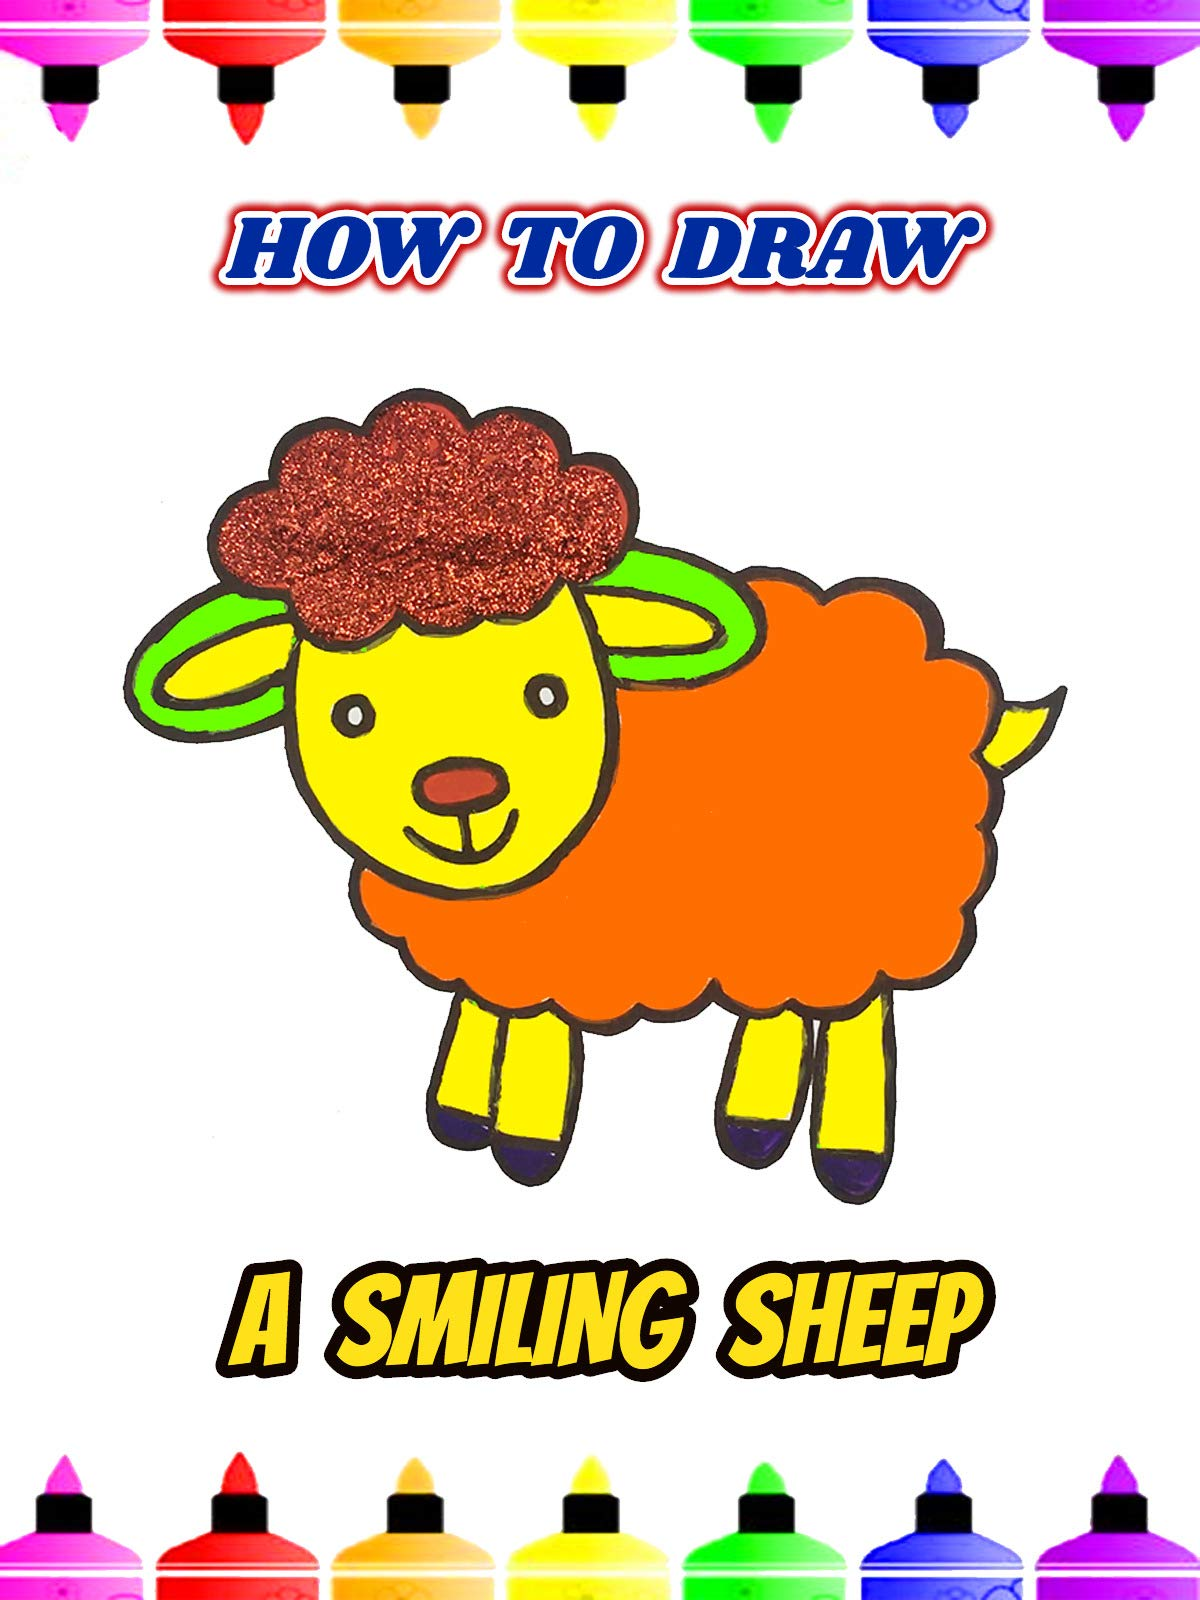 How To Draw A Smiling Sheep